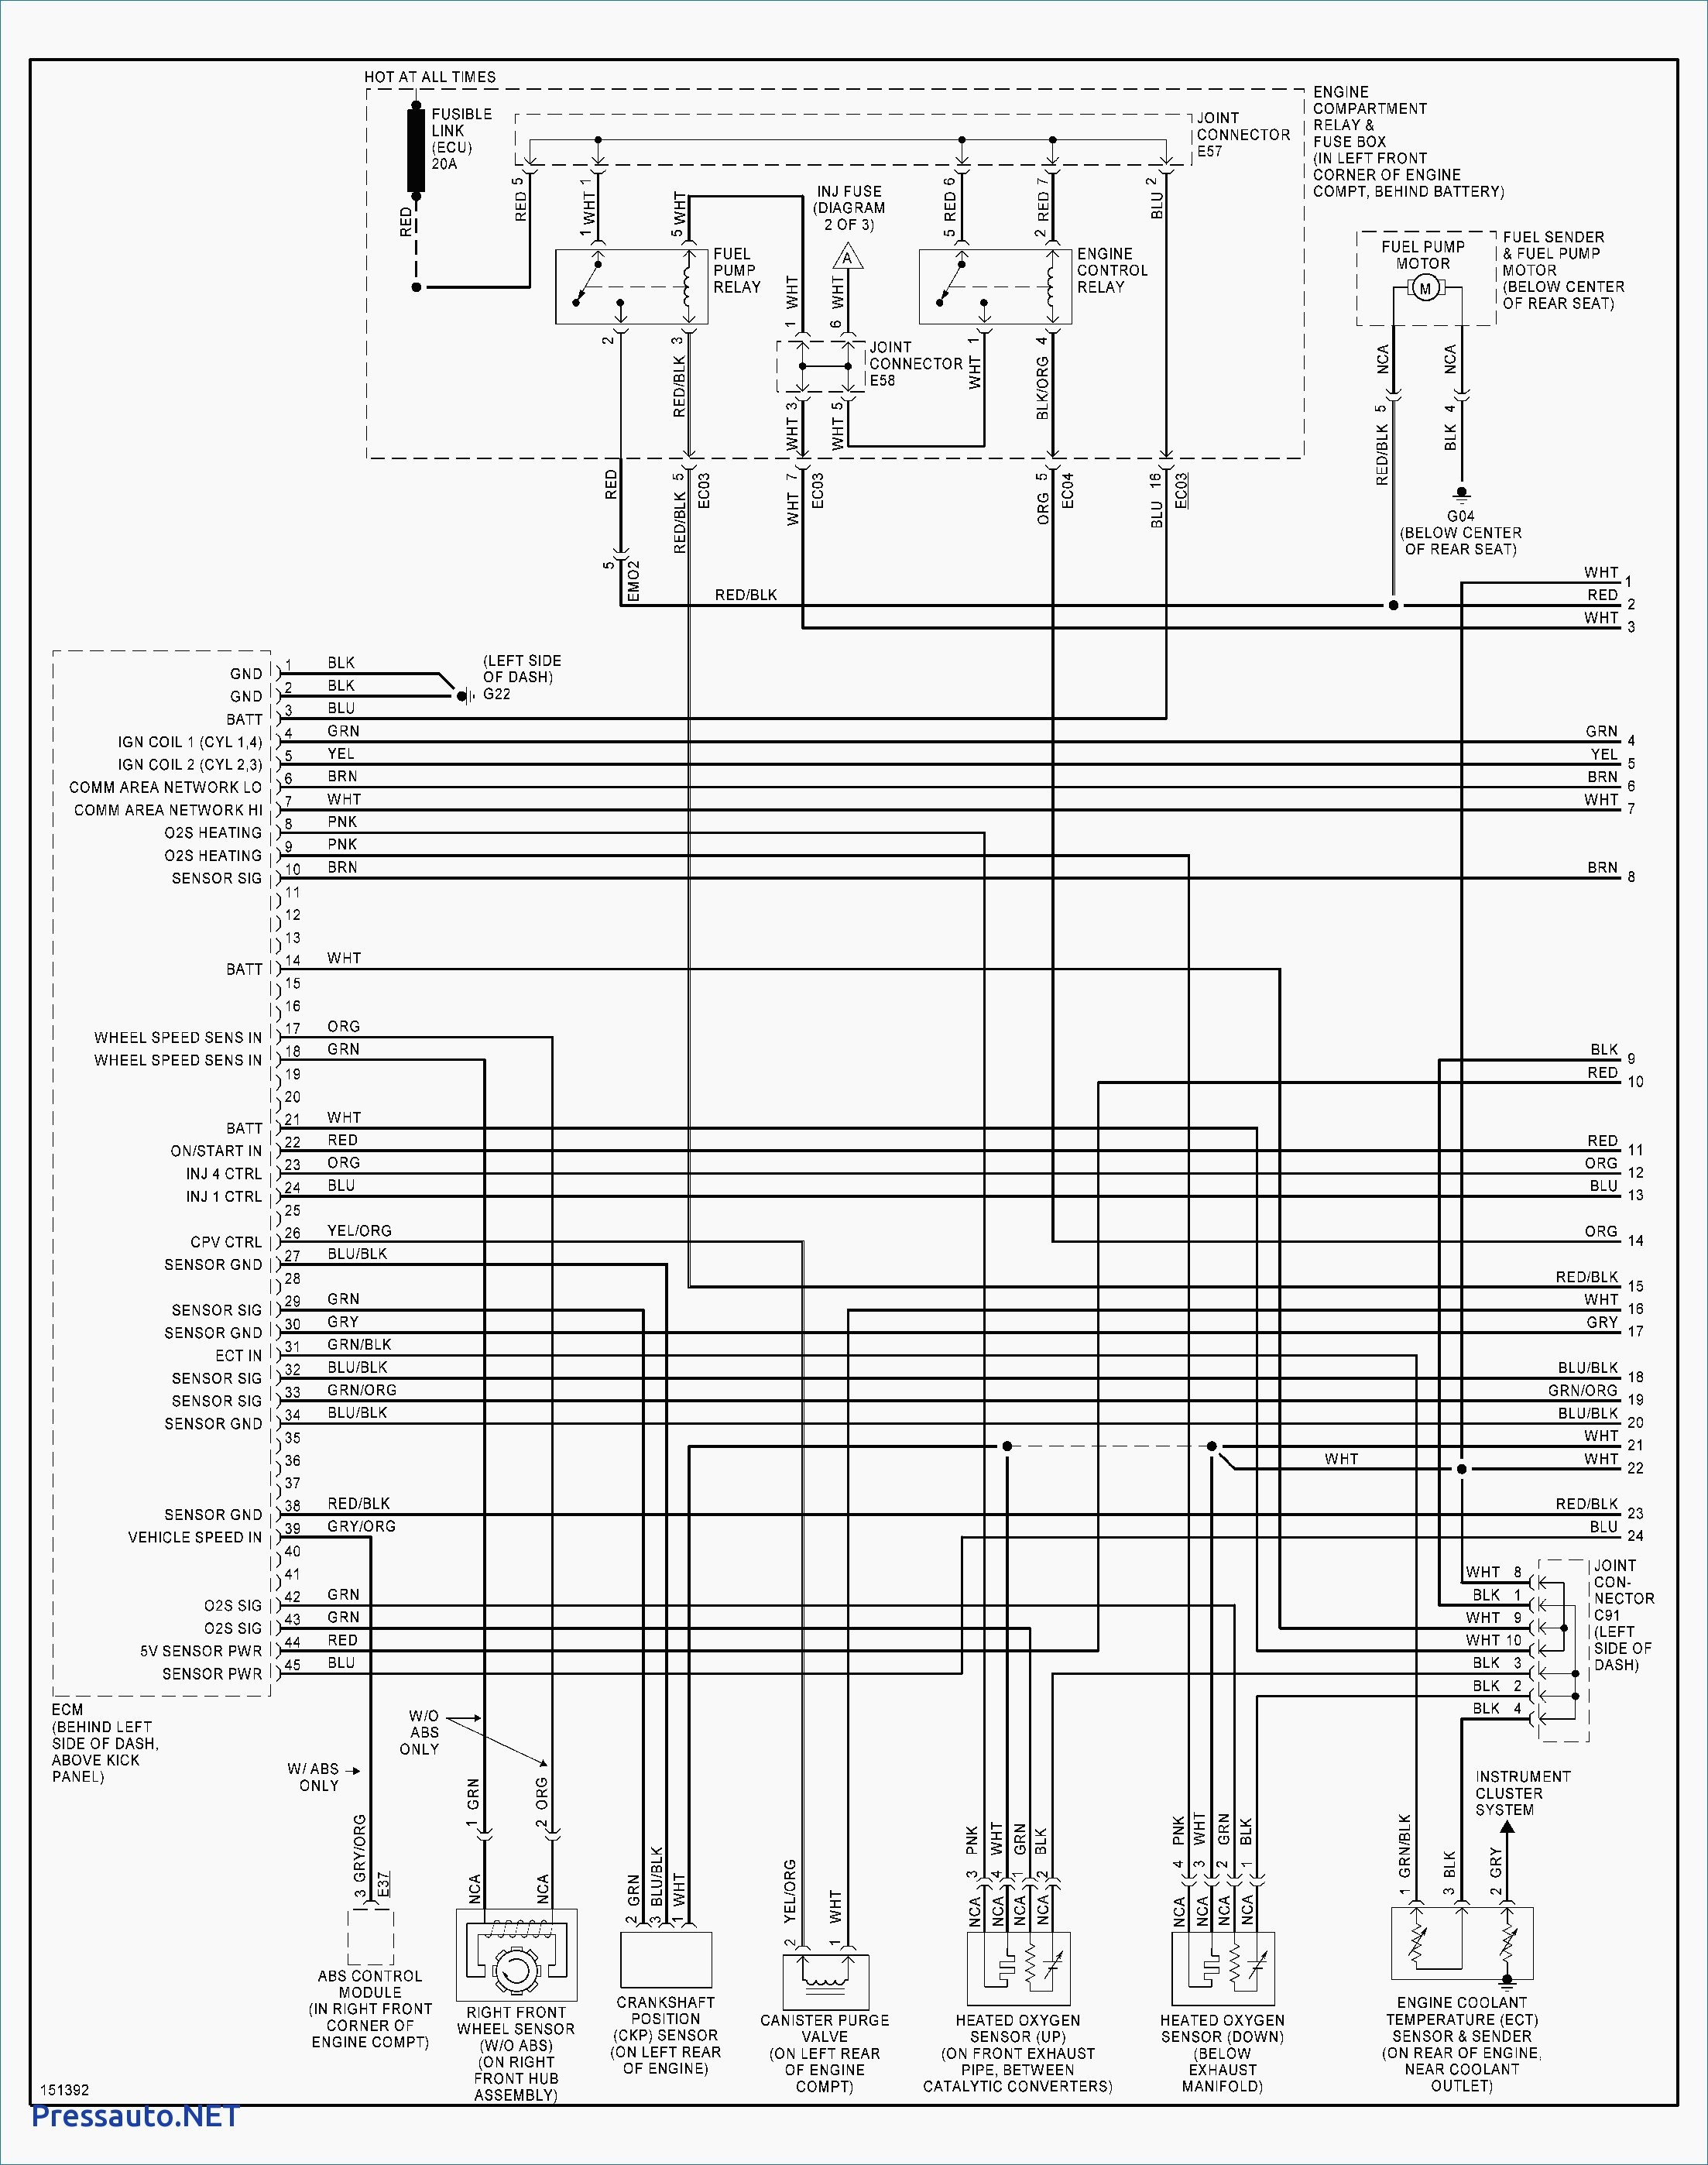 hyundai timing belt engine diagram wiring library 2002 hyundai accent engine diagram 2002 hyundai accent engine diagram 2002 hyundai accent engine diagram 2002 hyundai accent engine diagram